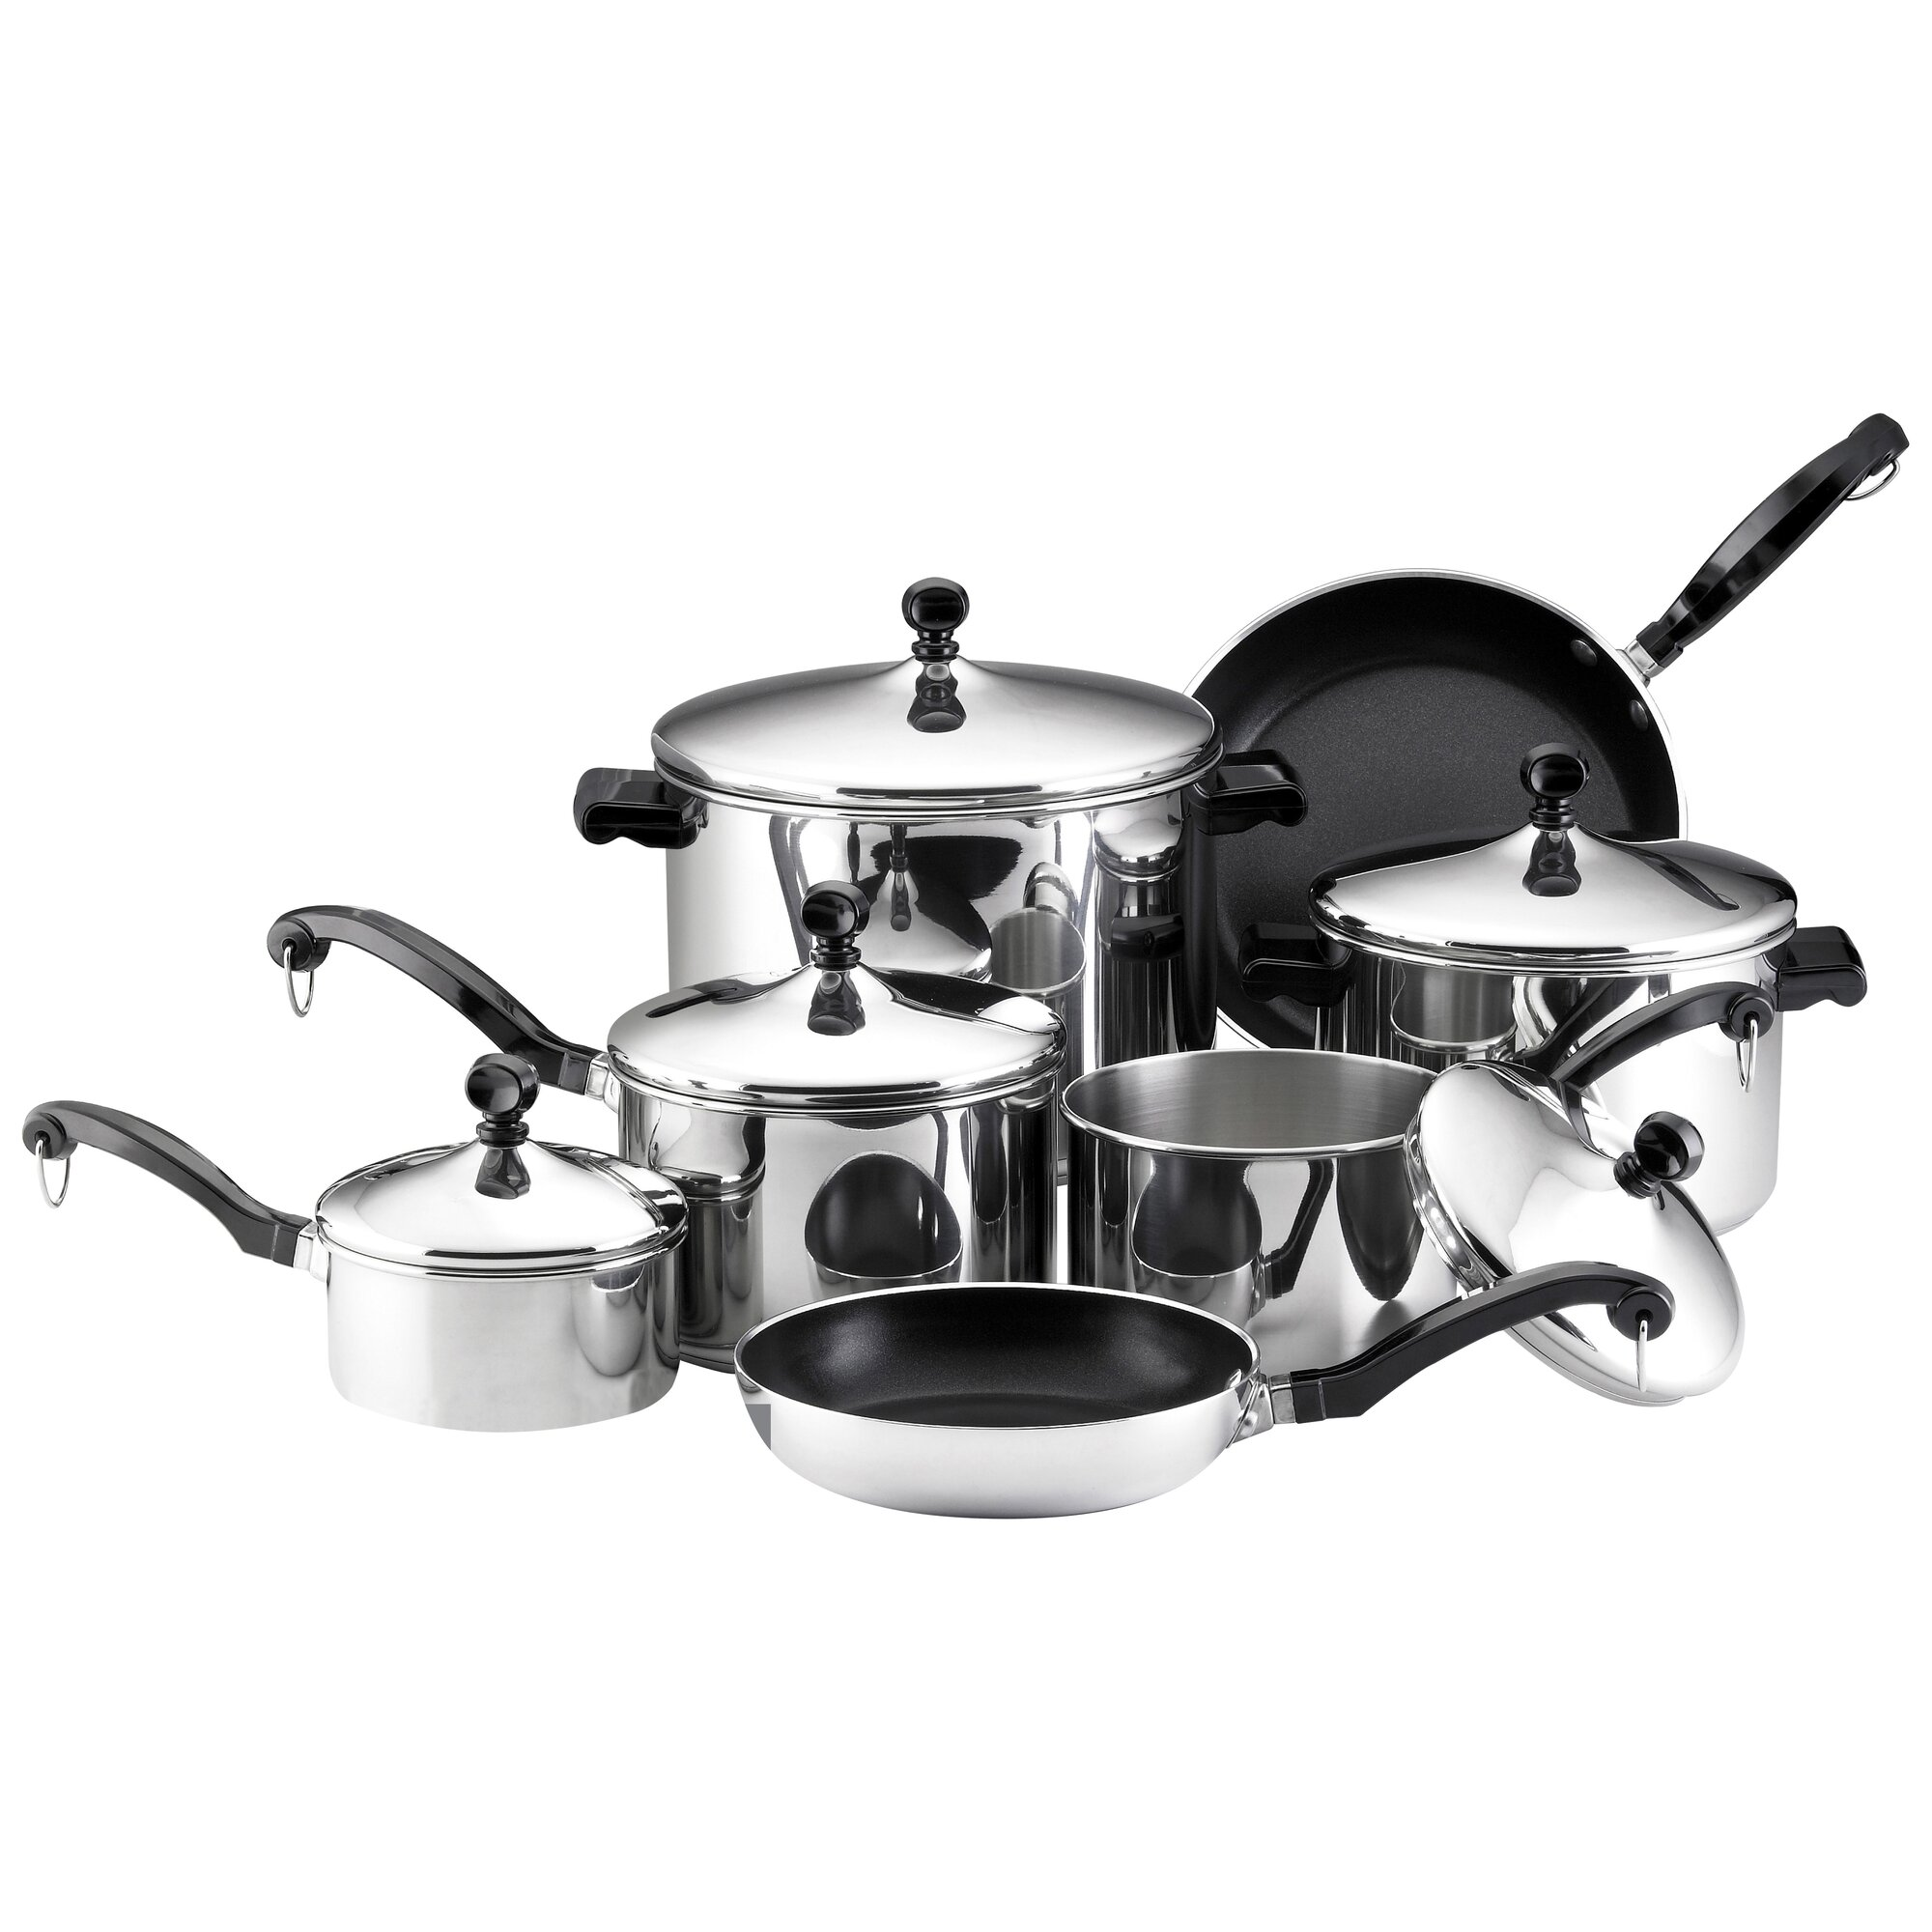 Farberware Classic Stainless Steel 15 Piece Cookware Set ...